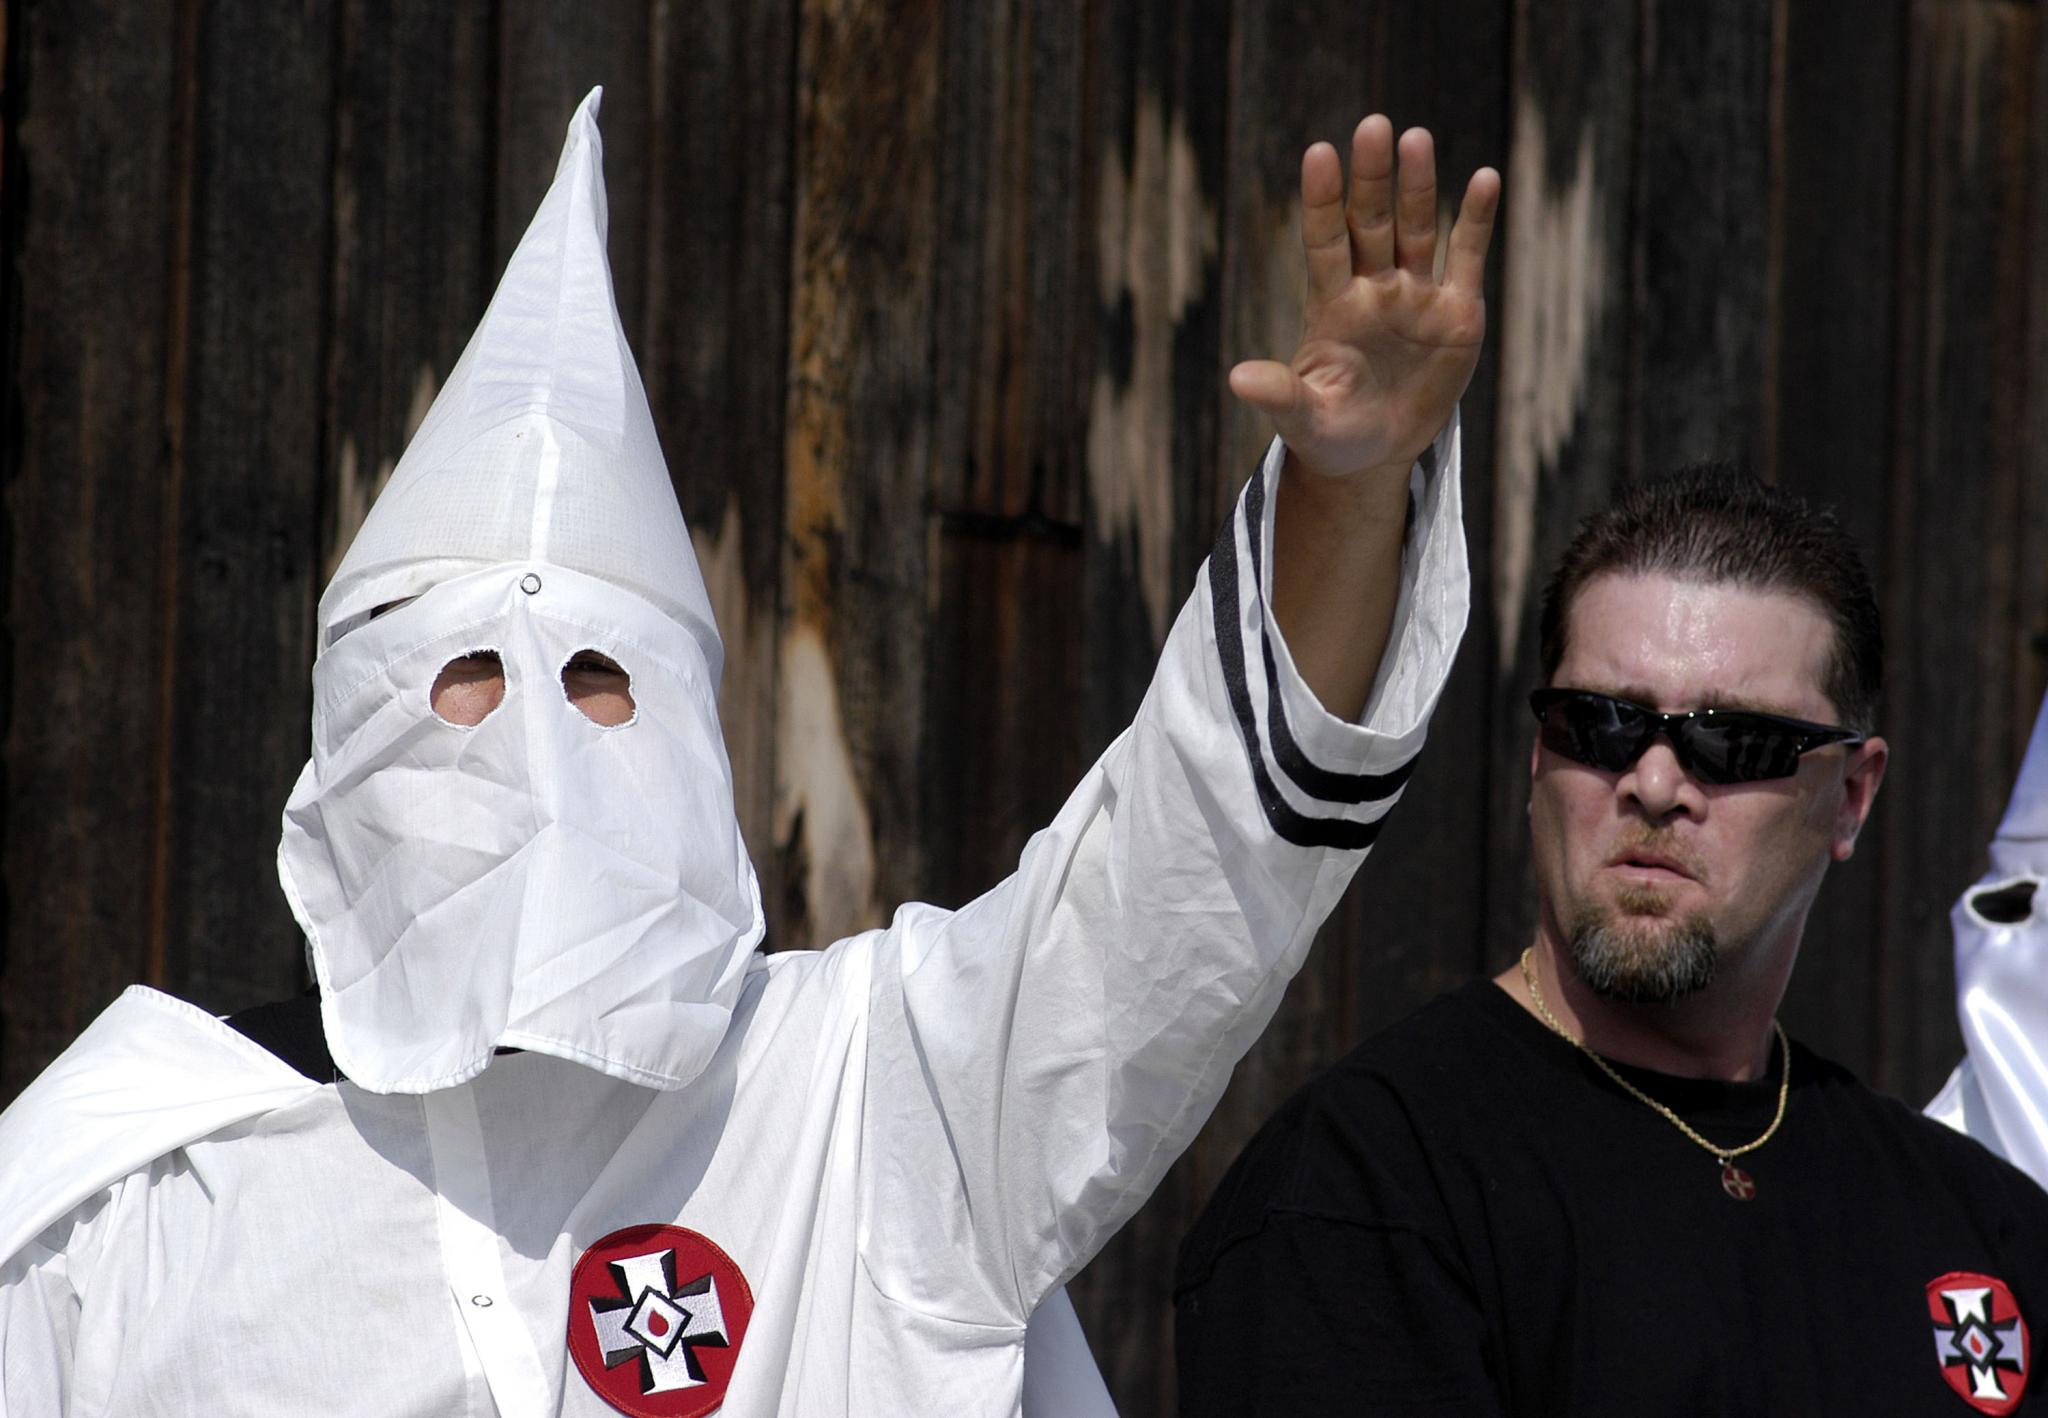 Newspaper Editor Who Encouraged The KKK To 'Ride Again' Was Just Replaced By A Black Woman